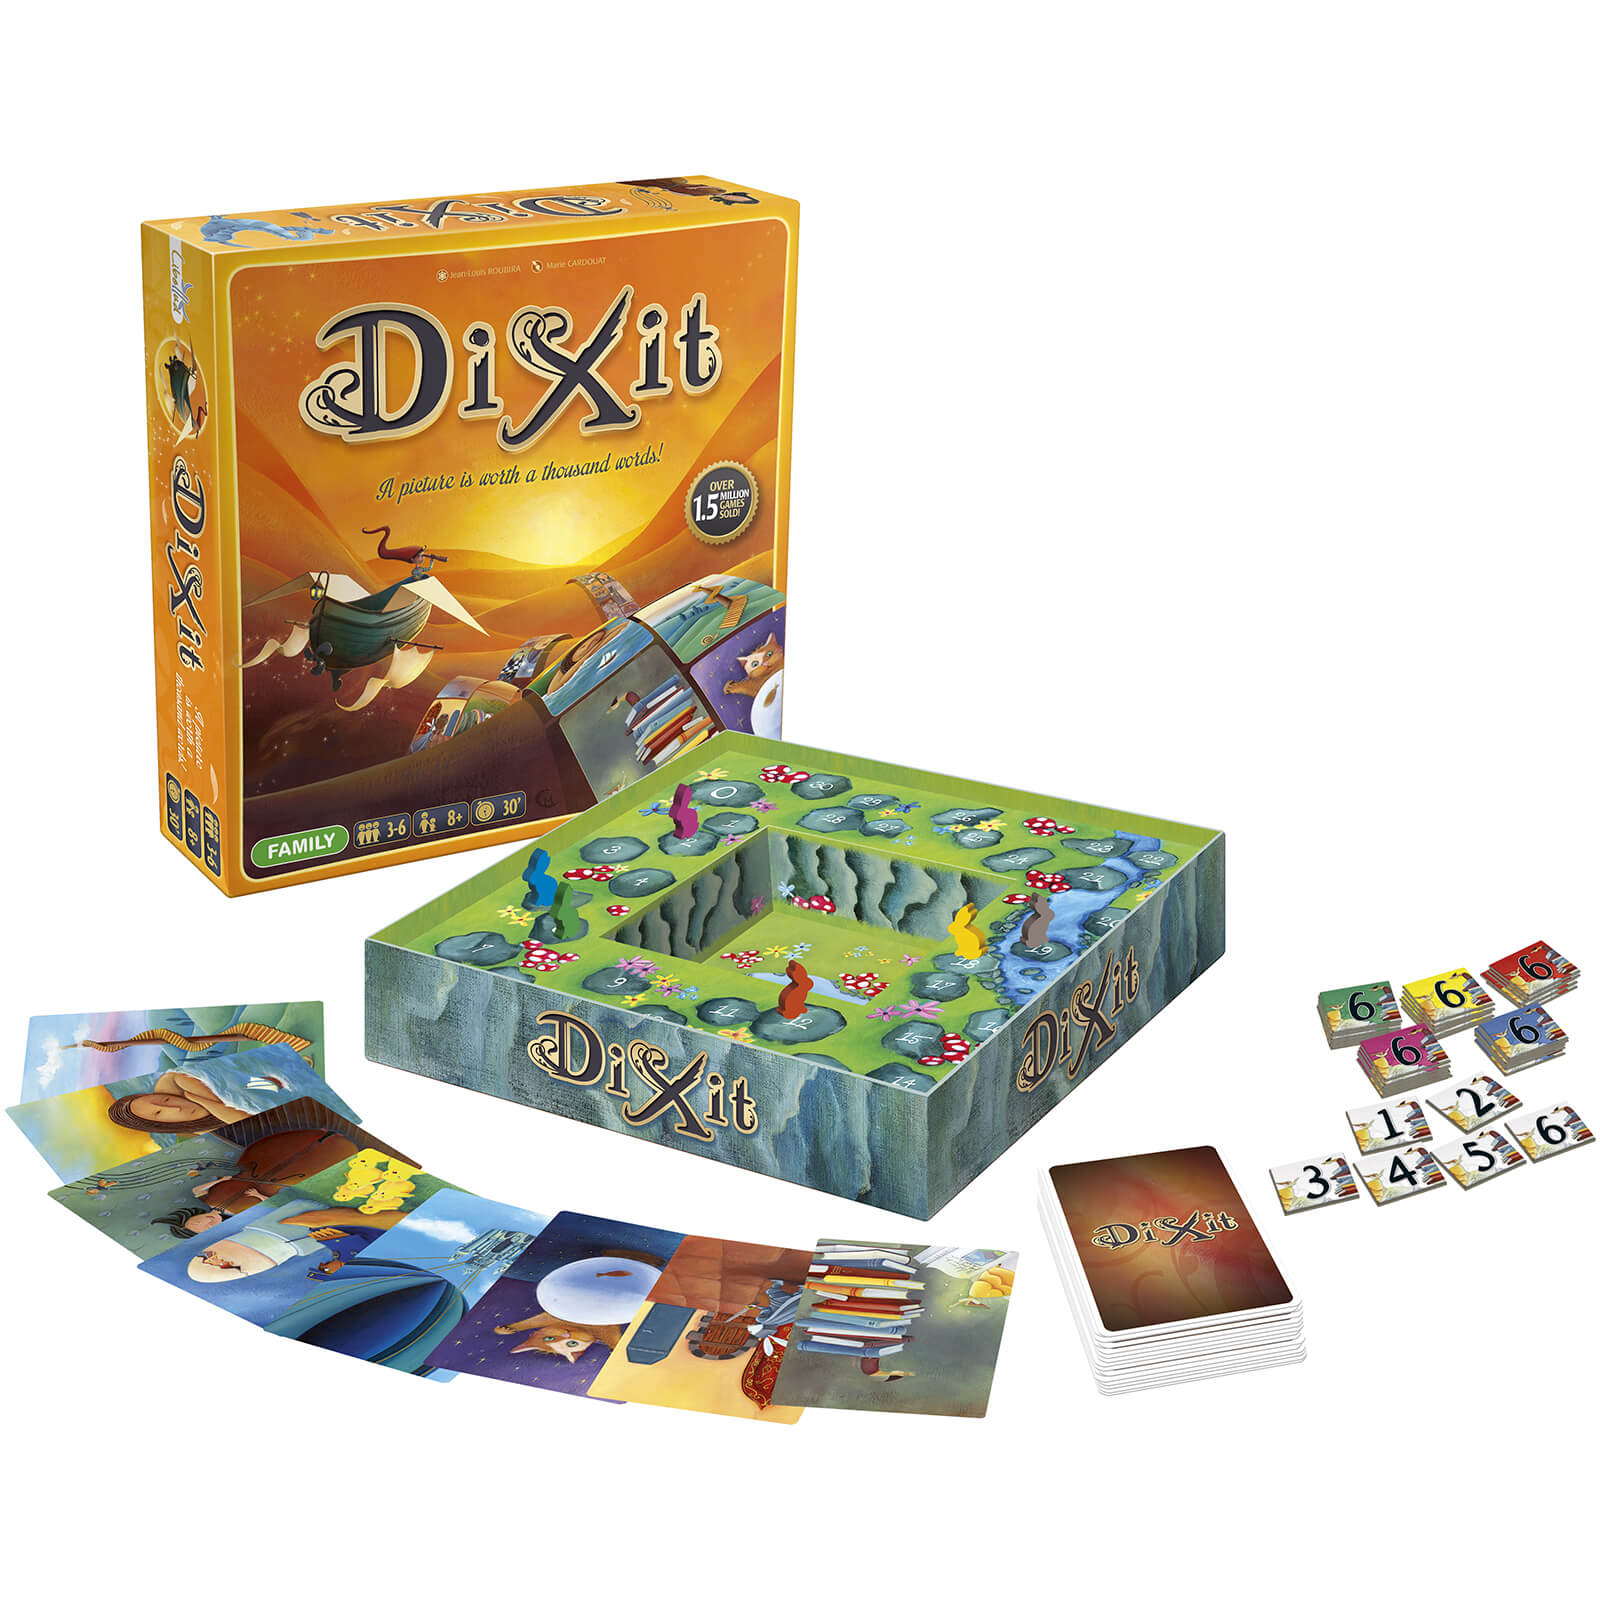 Image of Dixit Board Game